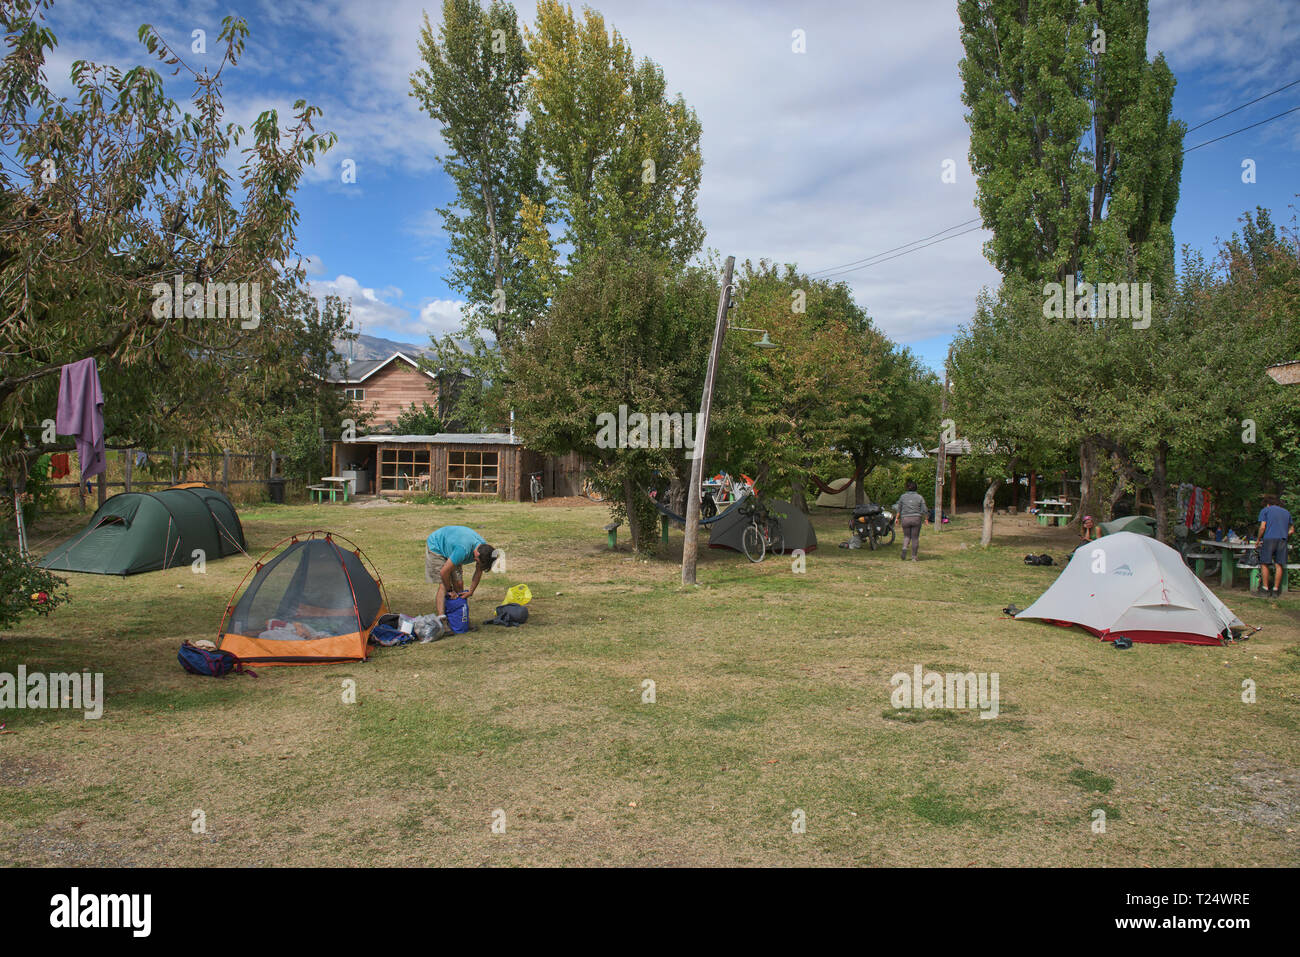 Typical campsite along the Carretera Austral, Patagonia, Aysen, Chile - Stock Image